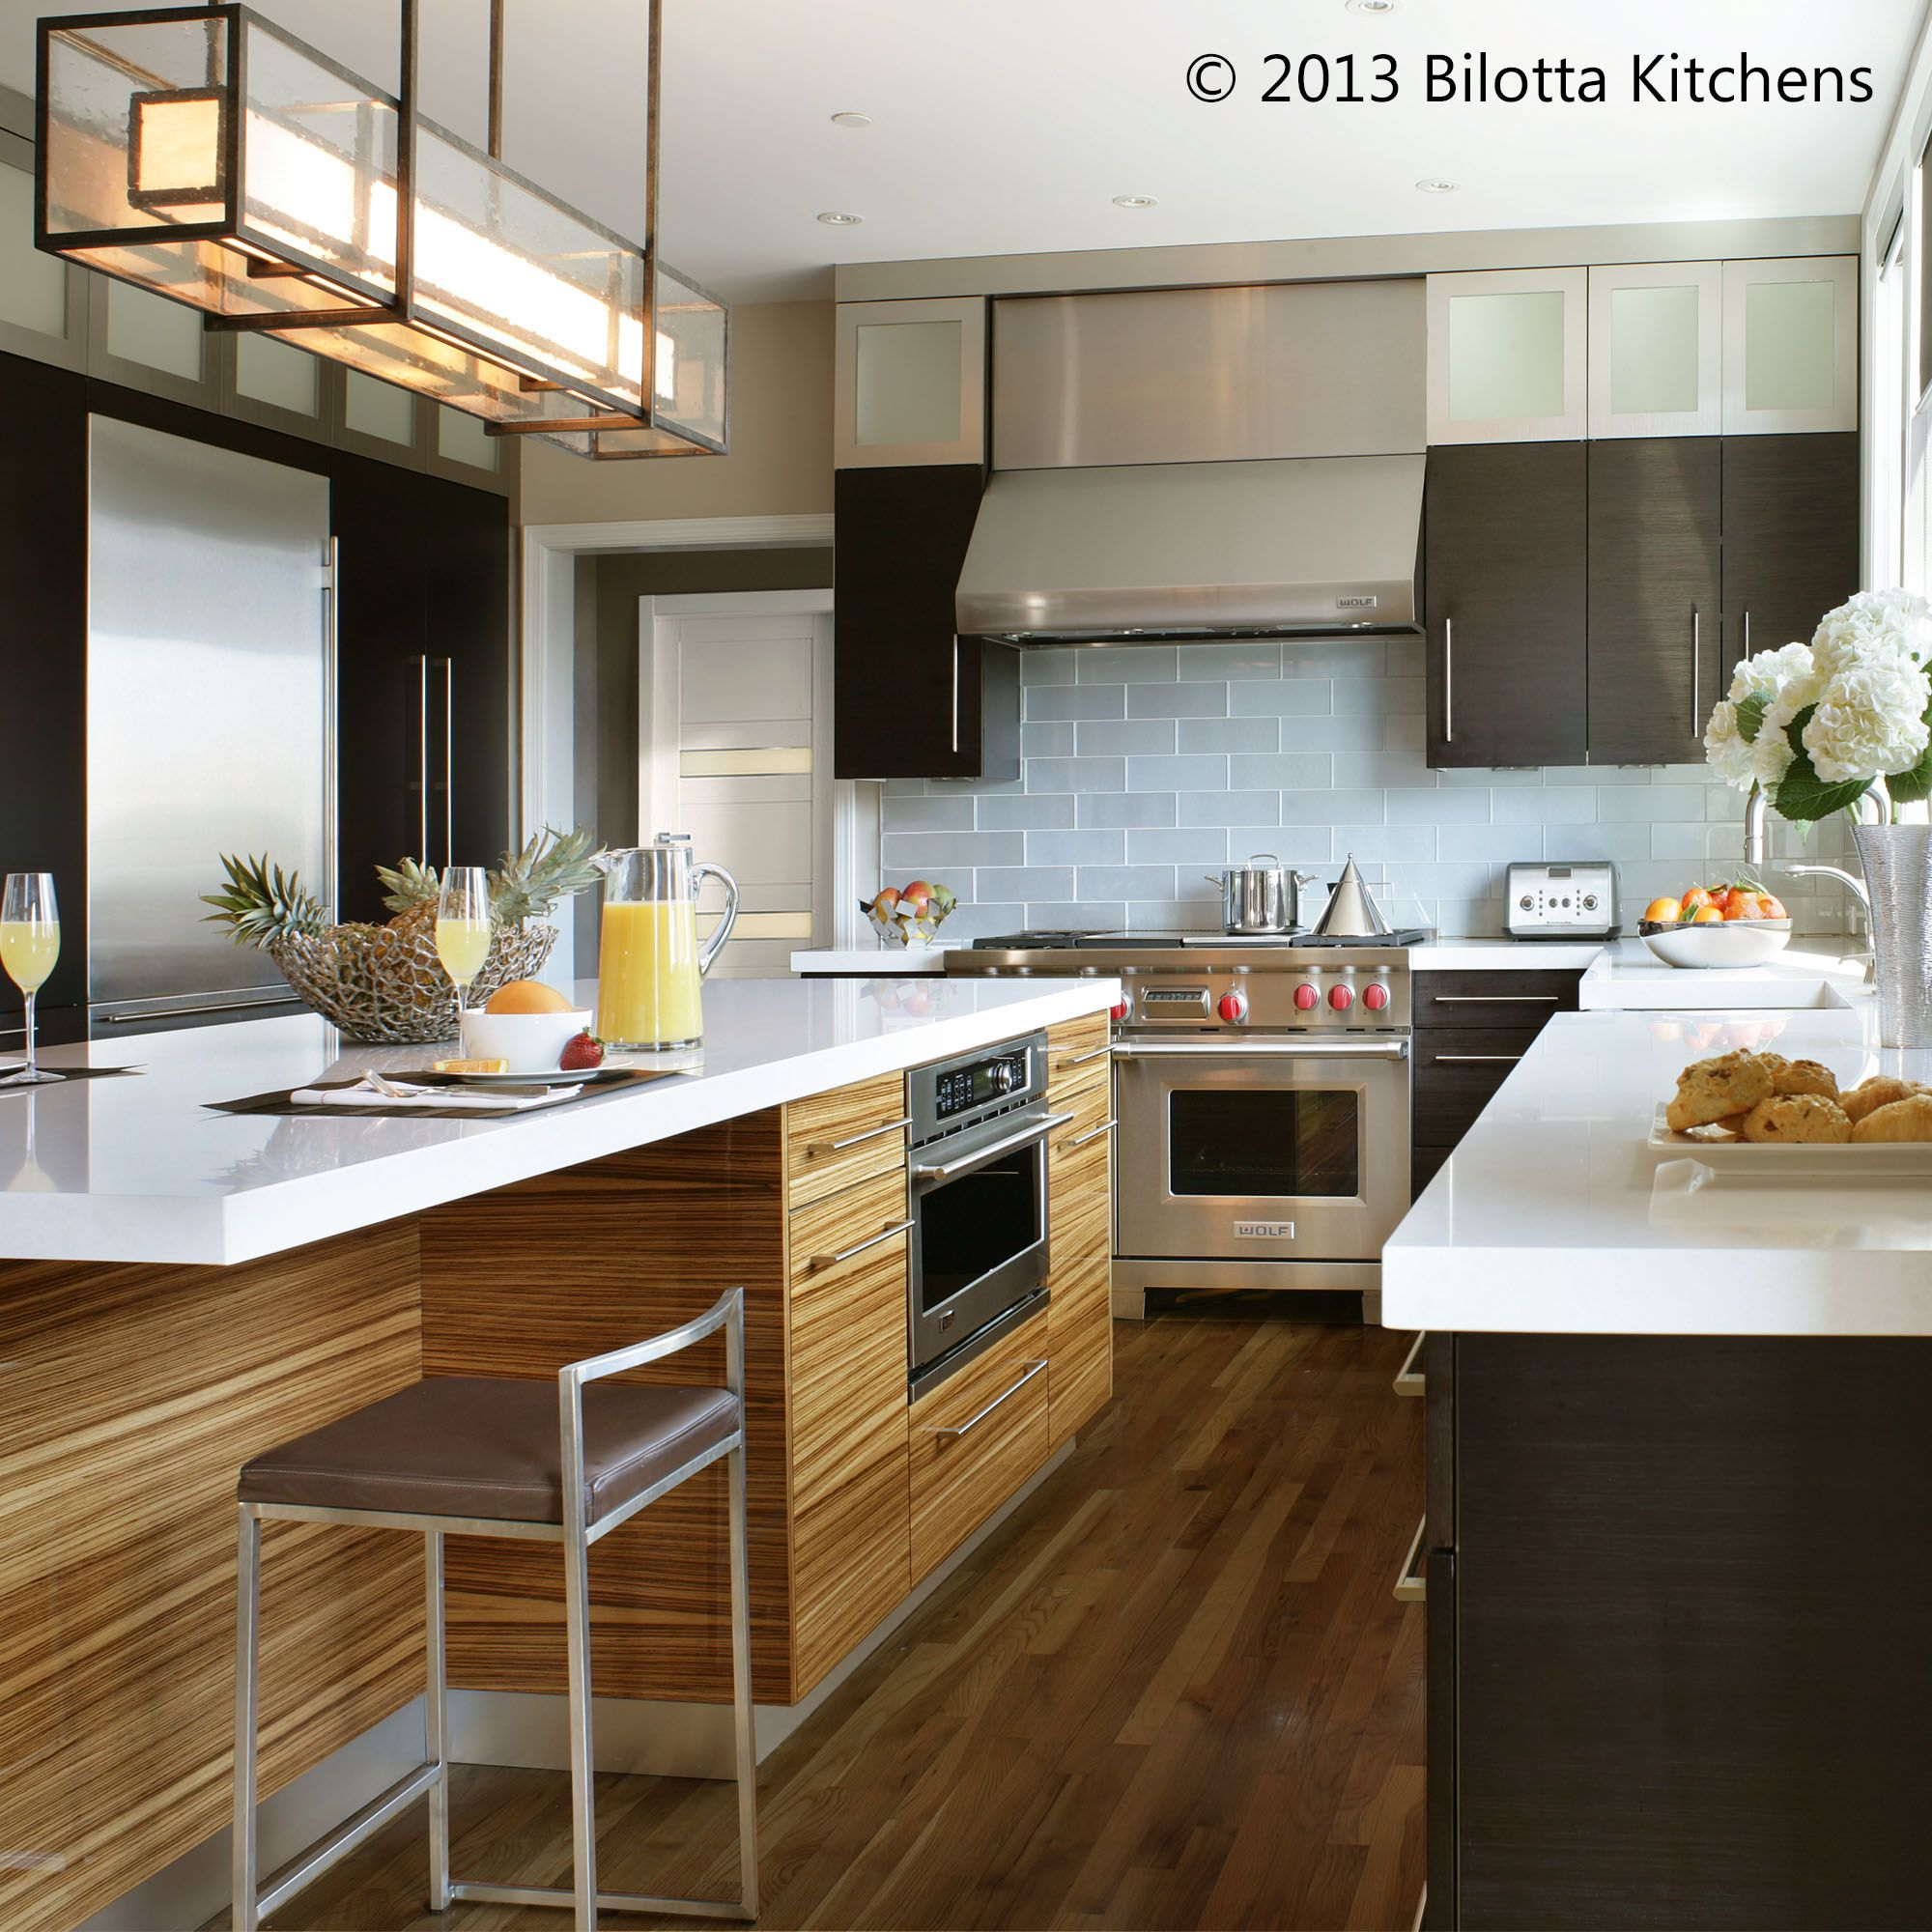 Kitchen Cabinets New York: Gutsy & Gorgeous In New York: Bold Measures #kitchen